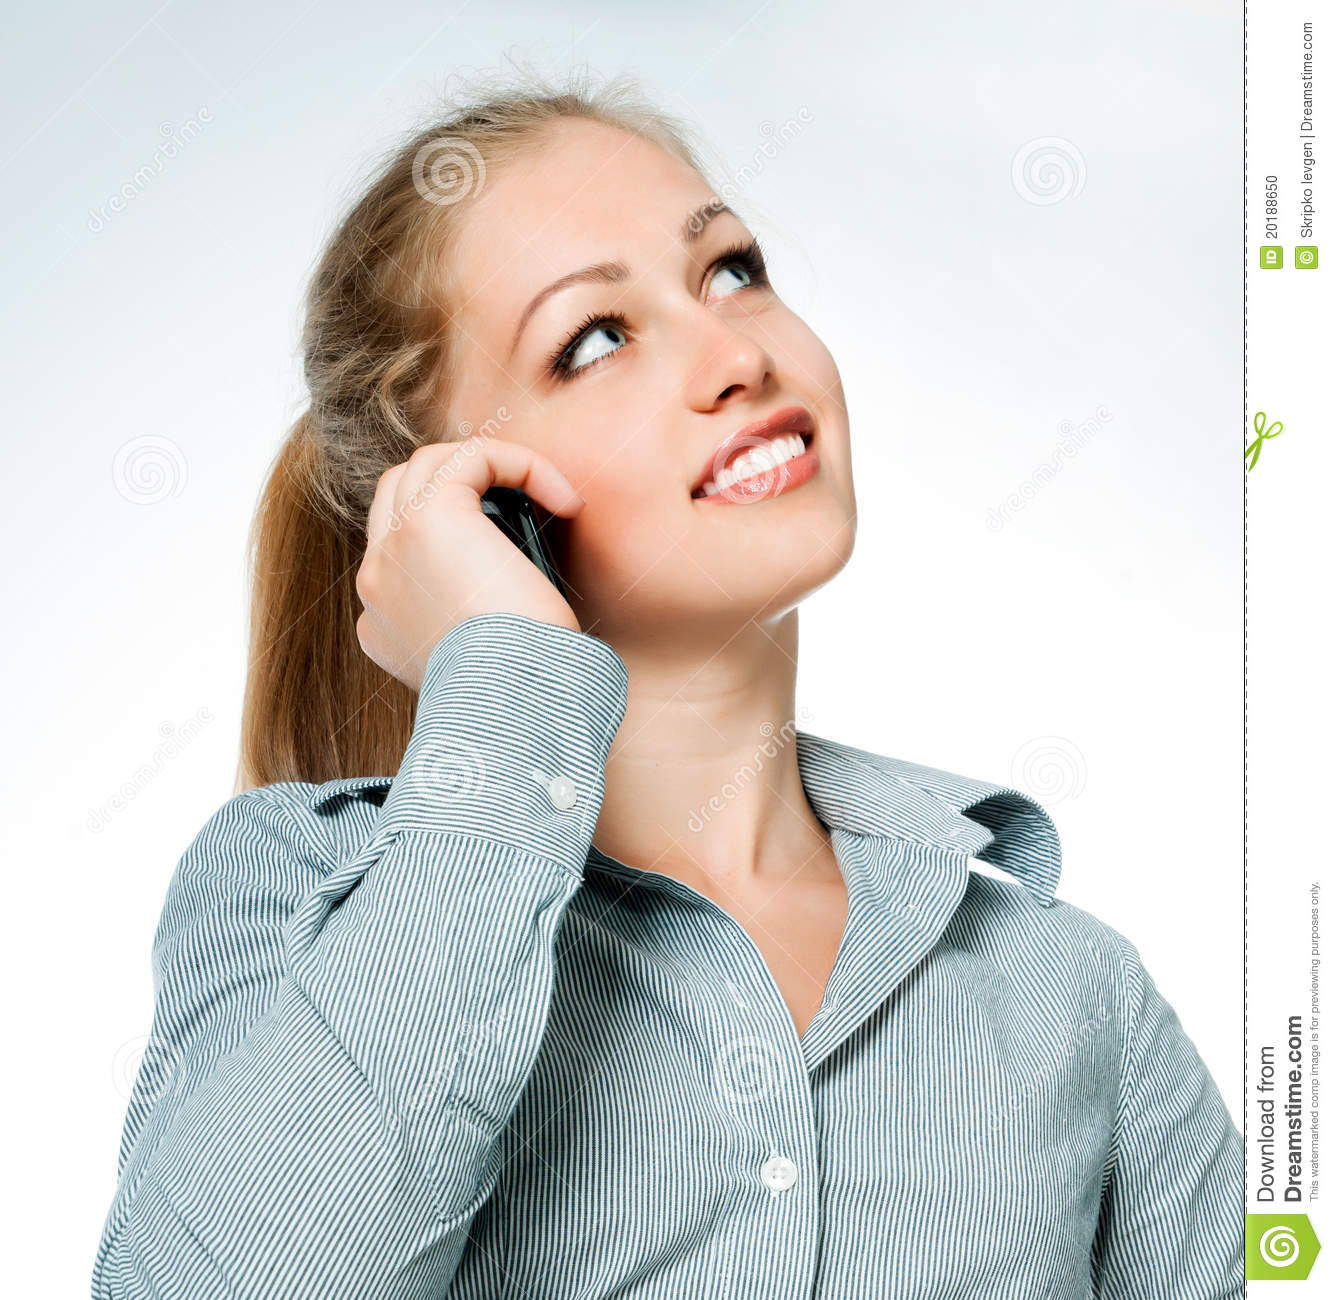 how to call smart customer service using cell phone